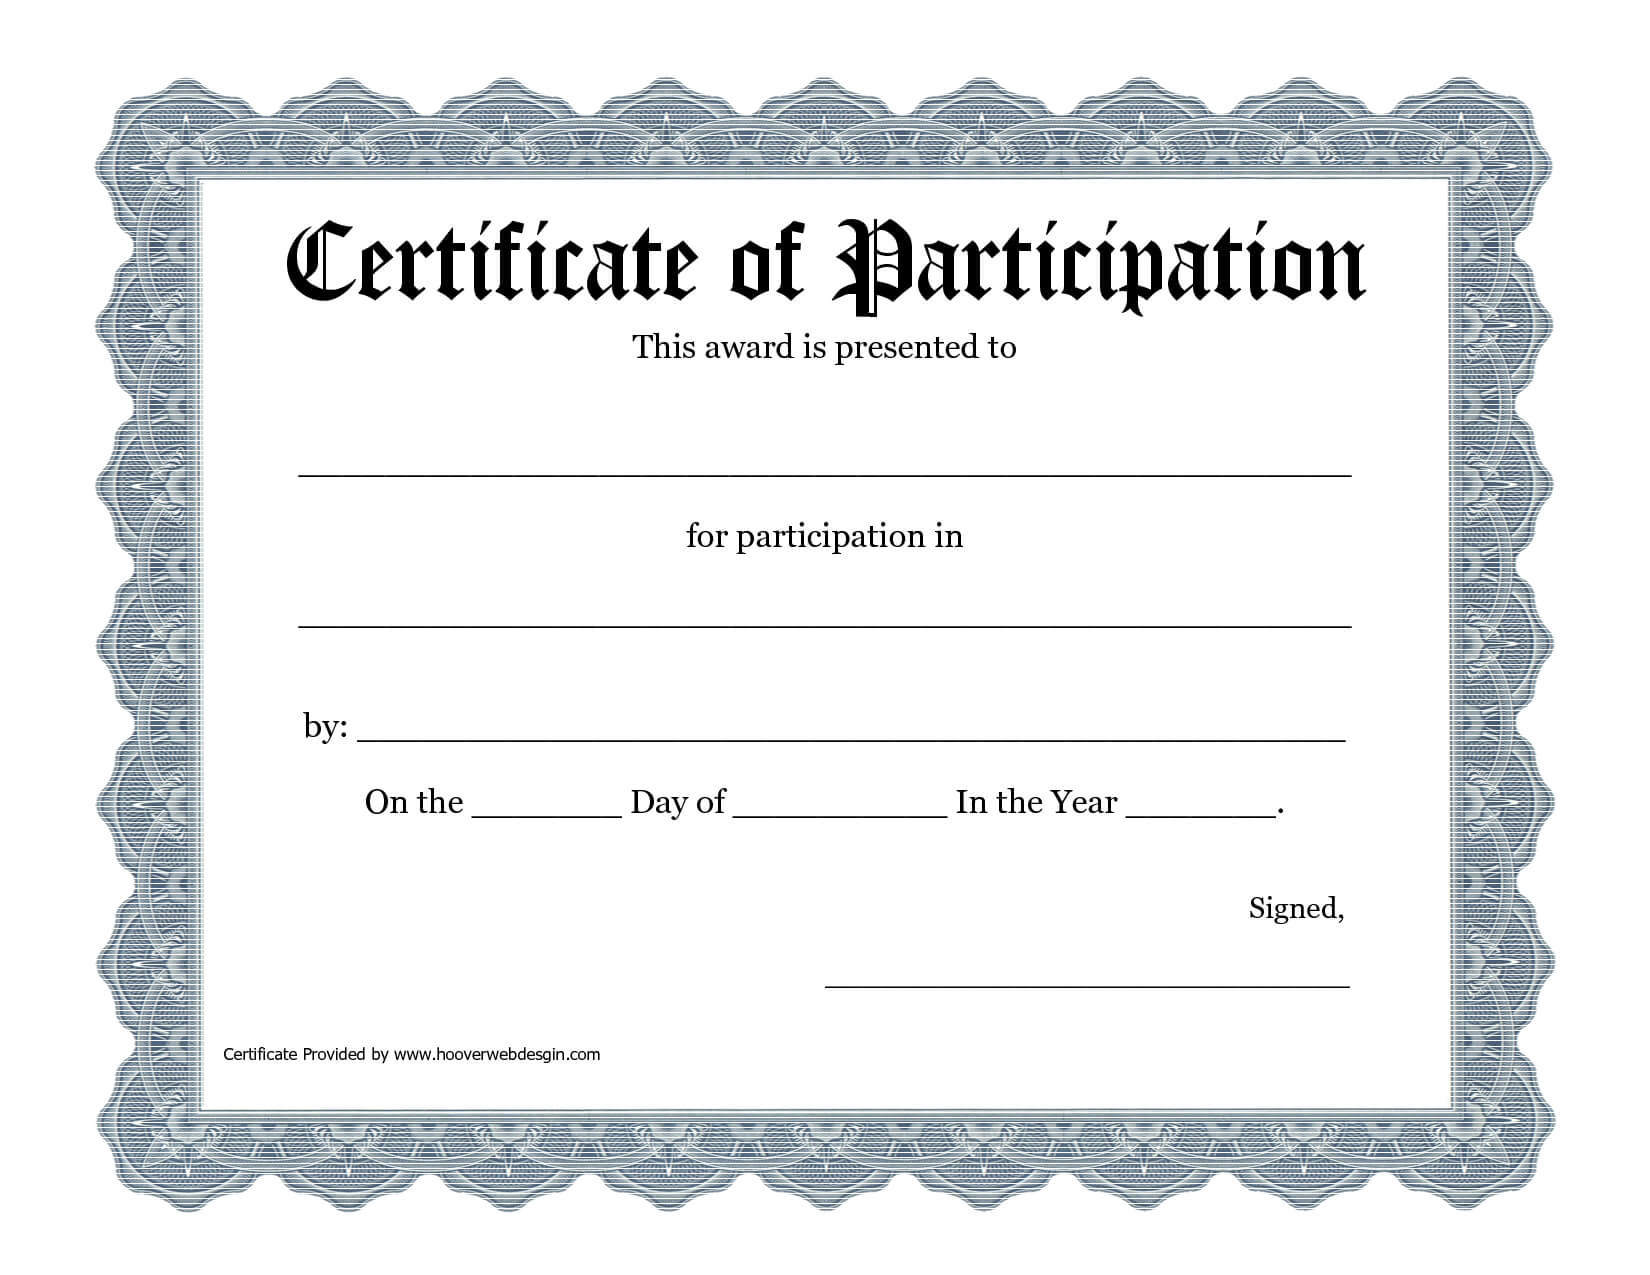 Free Printable Award Certificate Template - Bing Images within Certificate Of Participation Template Doc